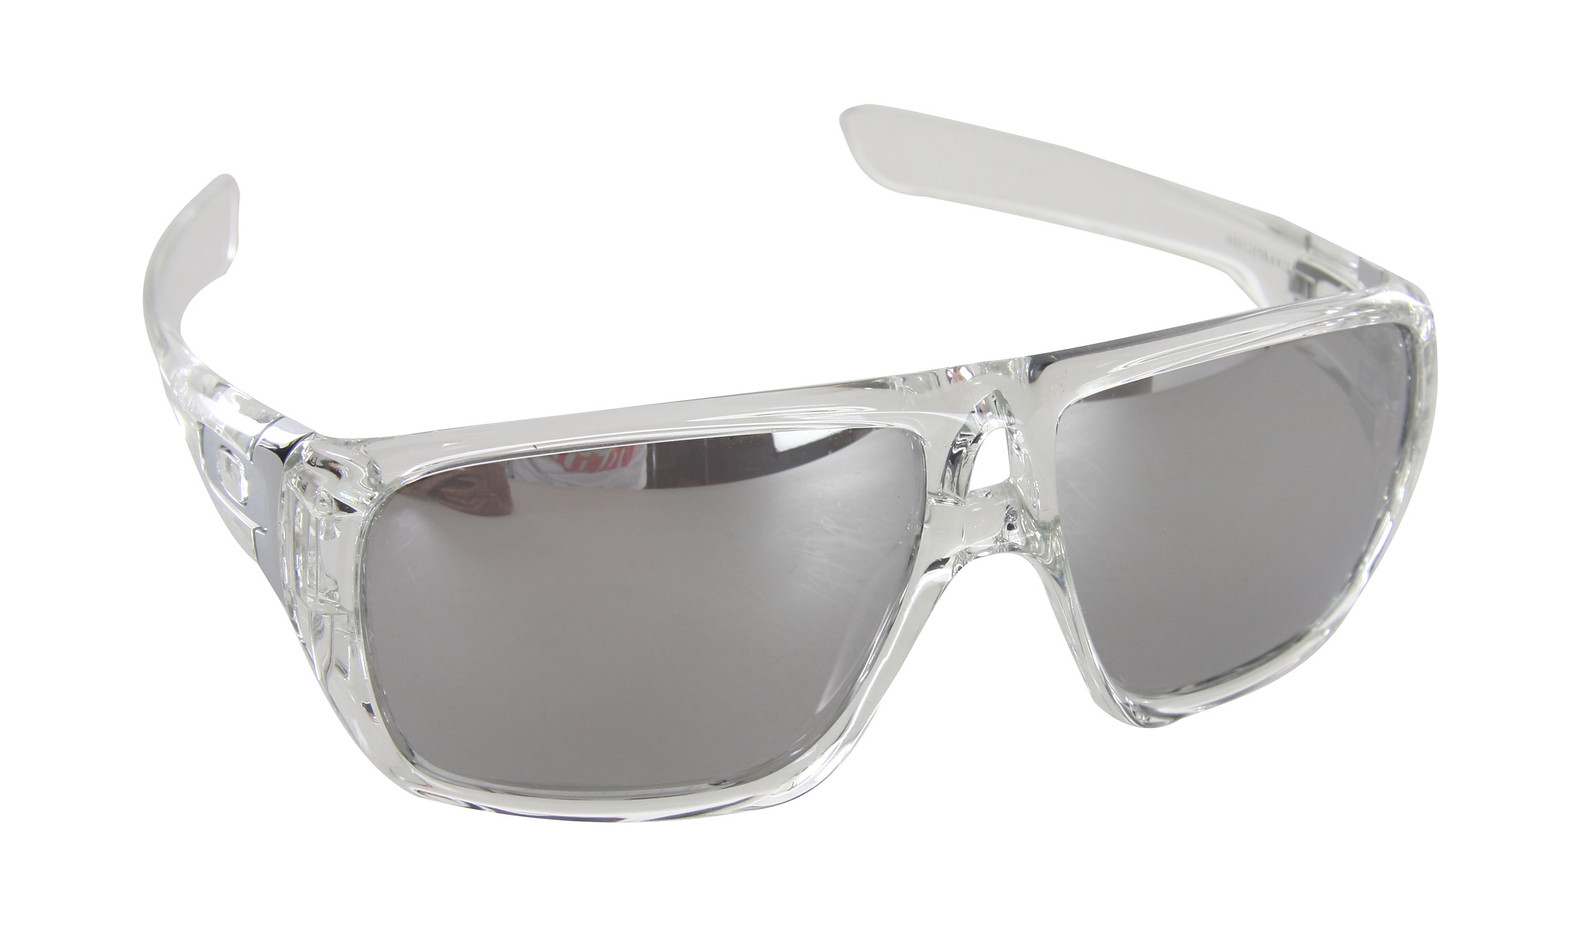 Oakley Dispatch Sunglasses Polished Clear/Chome Lens - Reviews ...